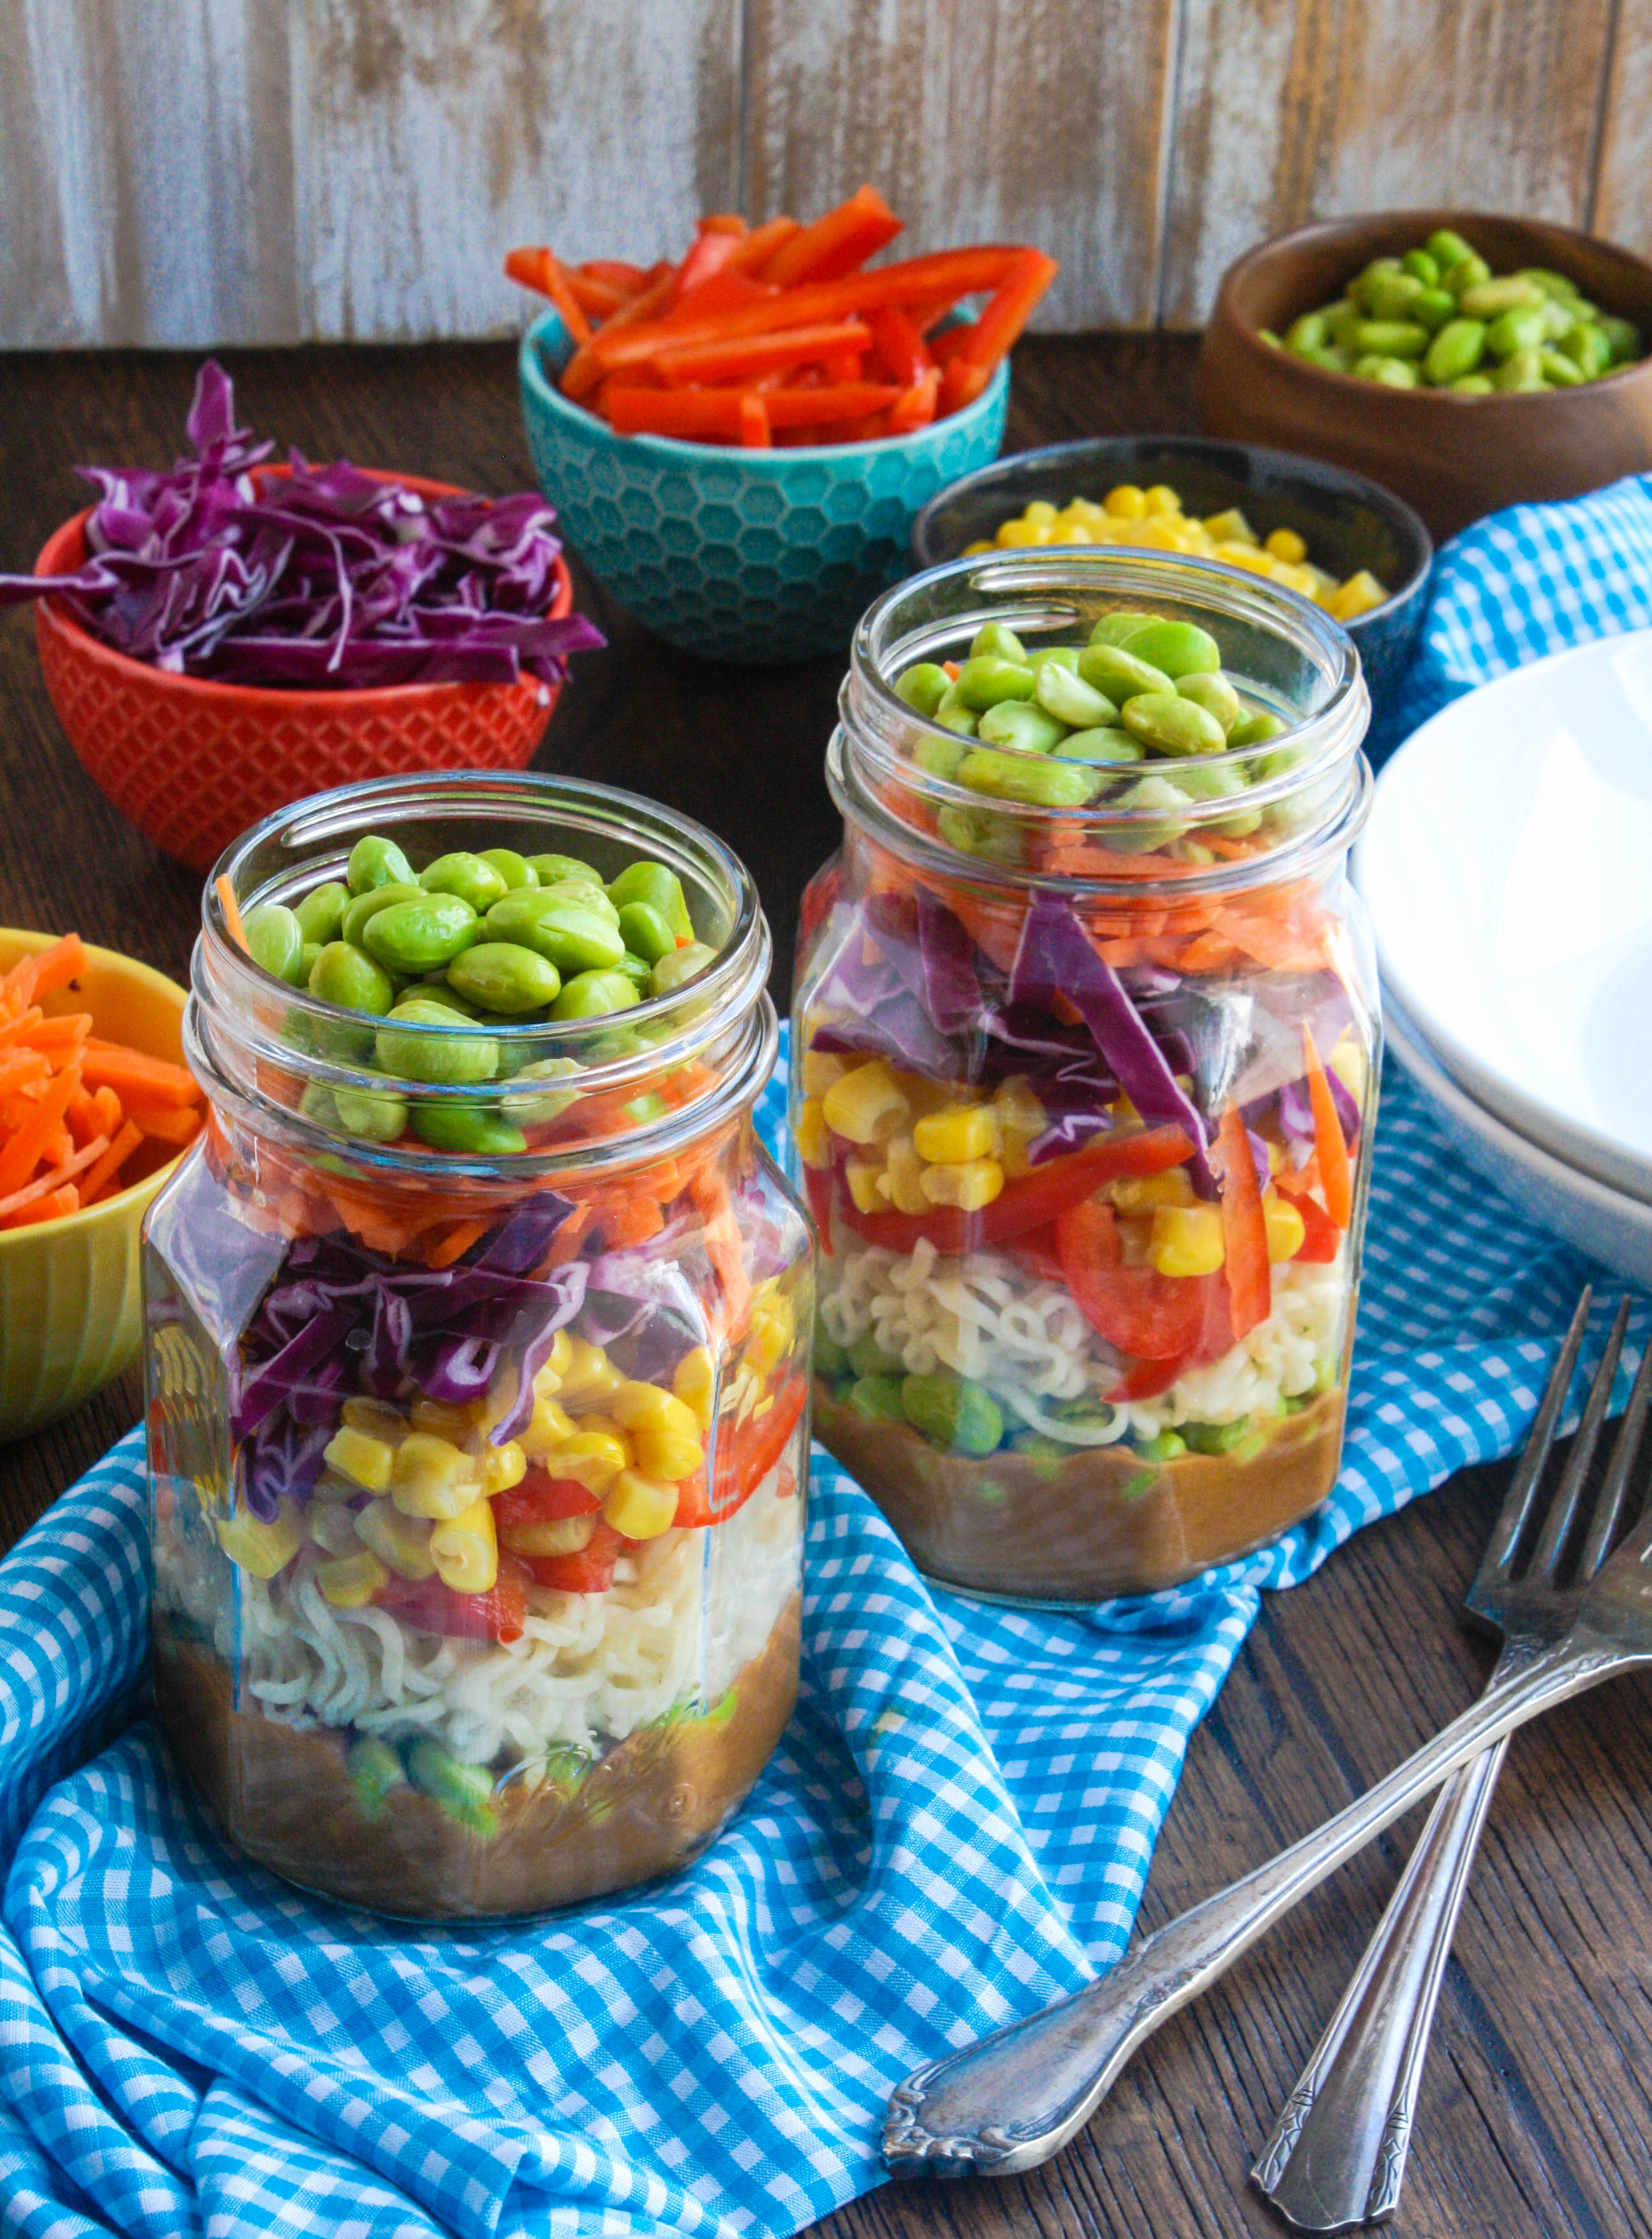 Asian Noodle Salad in a Jar with Spicy Peanut Dressing is a fun way to serve your next salad. It's totally delicious, too!